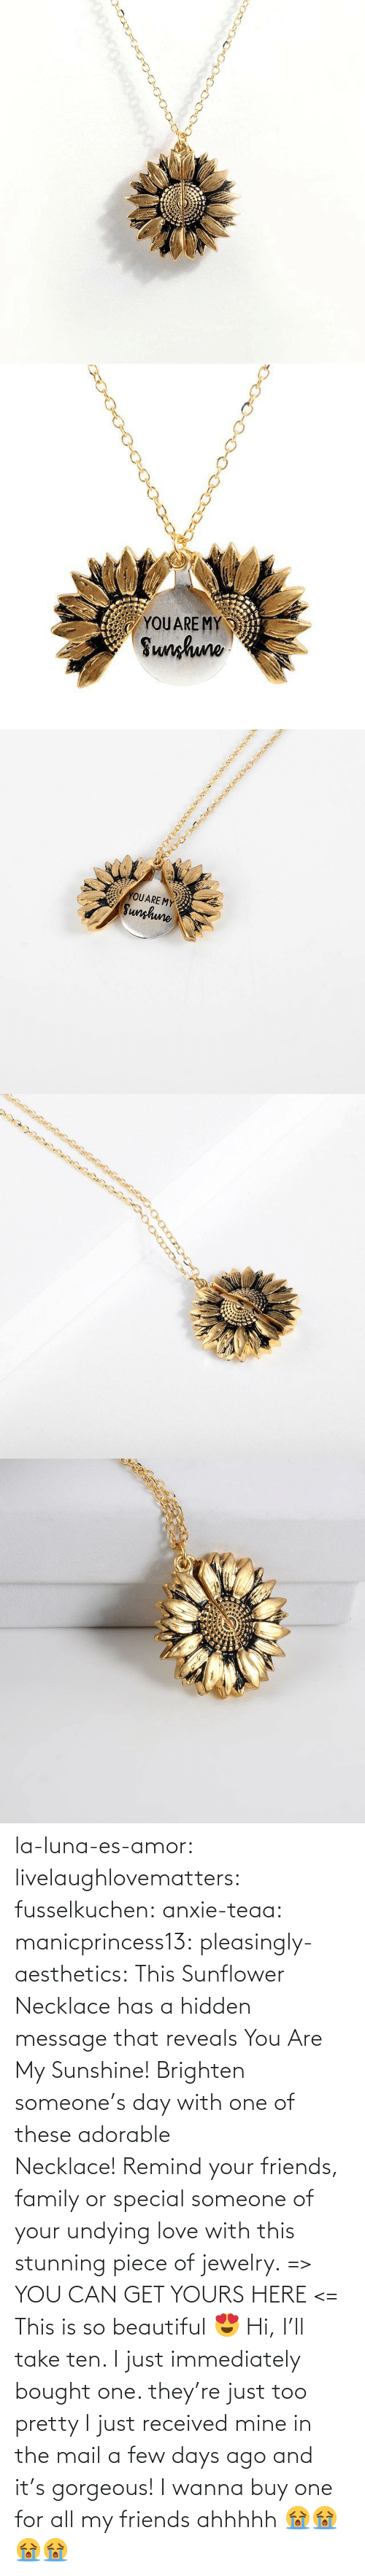 Beautiful, Family, and Friends: YOUARE MY  Sunhuno   YOUARE MY  Sunghune la-luna-es-amor:  livelaughlovematters: fusselkuchen:  anxie-teaa:   manicprincess13:   pleasingly-aesthetics:  This Sunflower Necklace has a hidden message that reveals You Are My Sunshine! Brighten someone's day with one of these adorable Necklace!Remind your friends, family or special someone of your undying love with this stunning piece of jewelry. => YOU CAN GET YOURS HERE <=   This is so beautiful 😍    Hi, I'll take ten.    I just immediately bought one. they're just too pretty   I just received mine in the mail a few days ago and it's gorgeous!   I wanna buy one for all my friends ahhhhh 😭😭😭😭